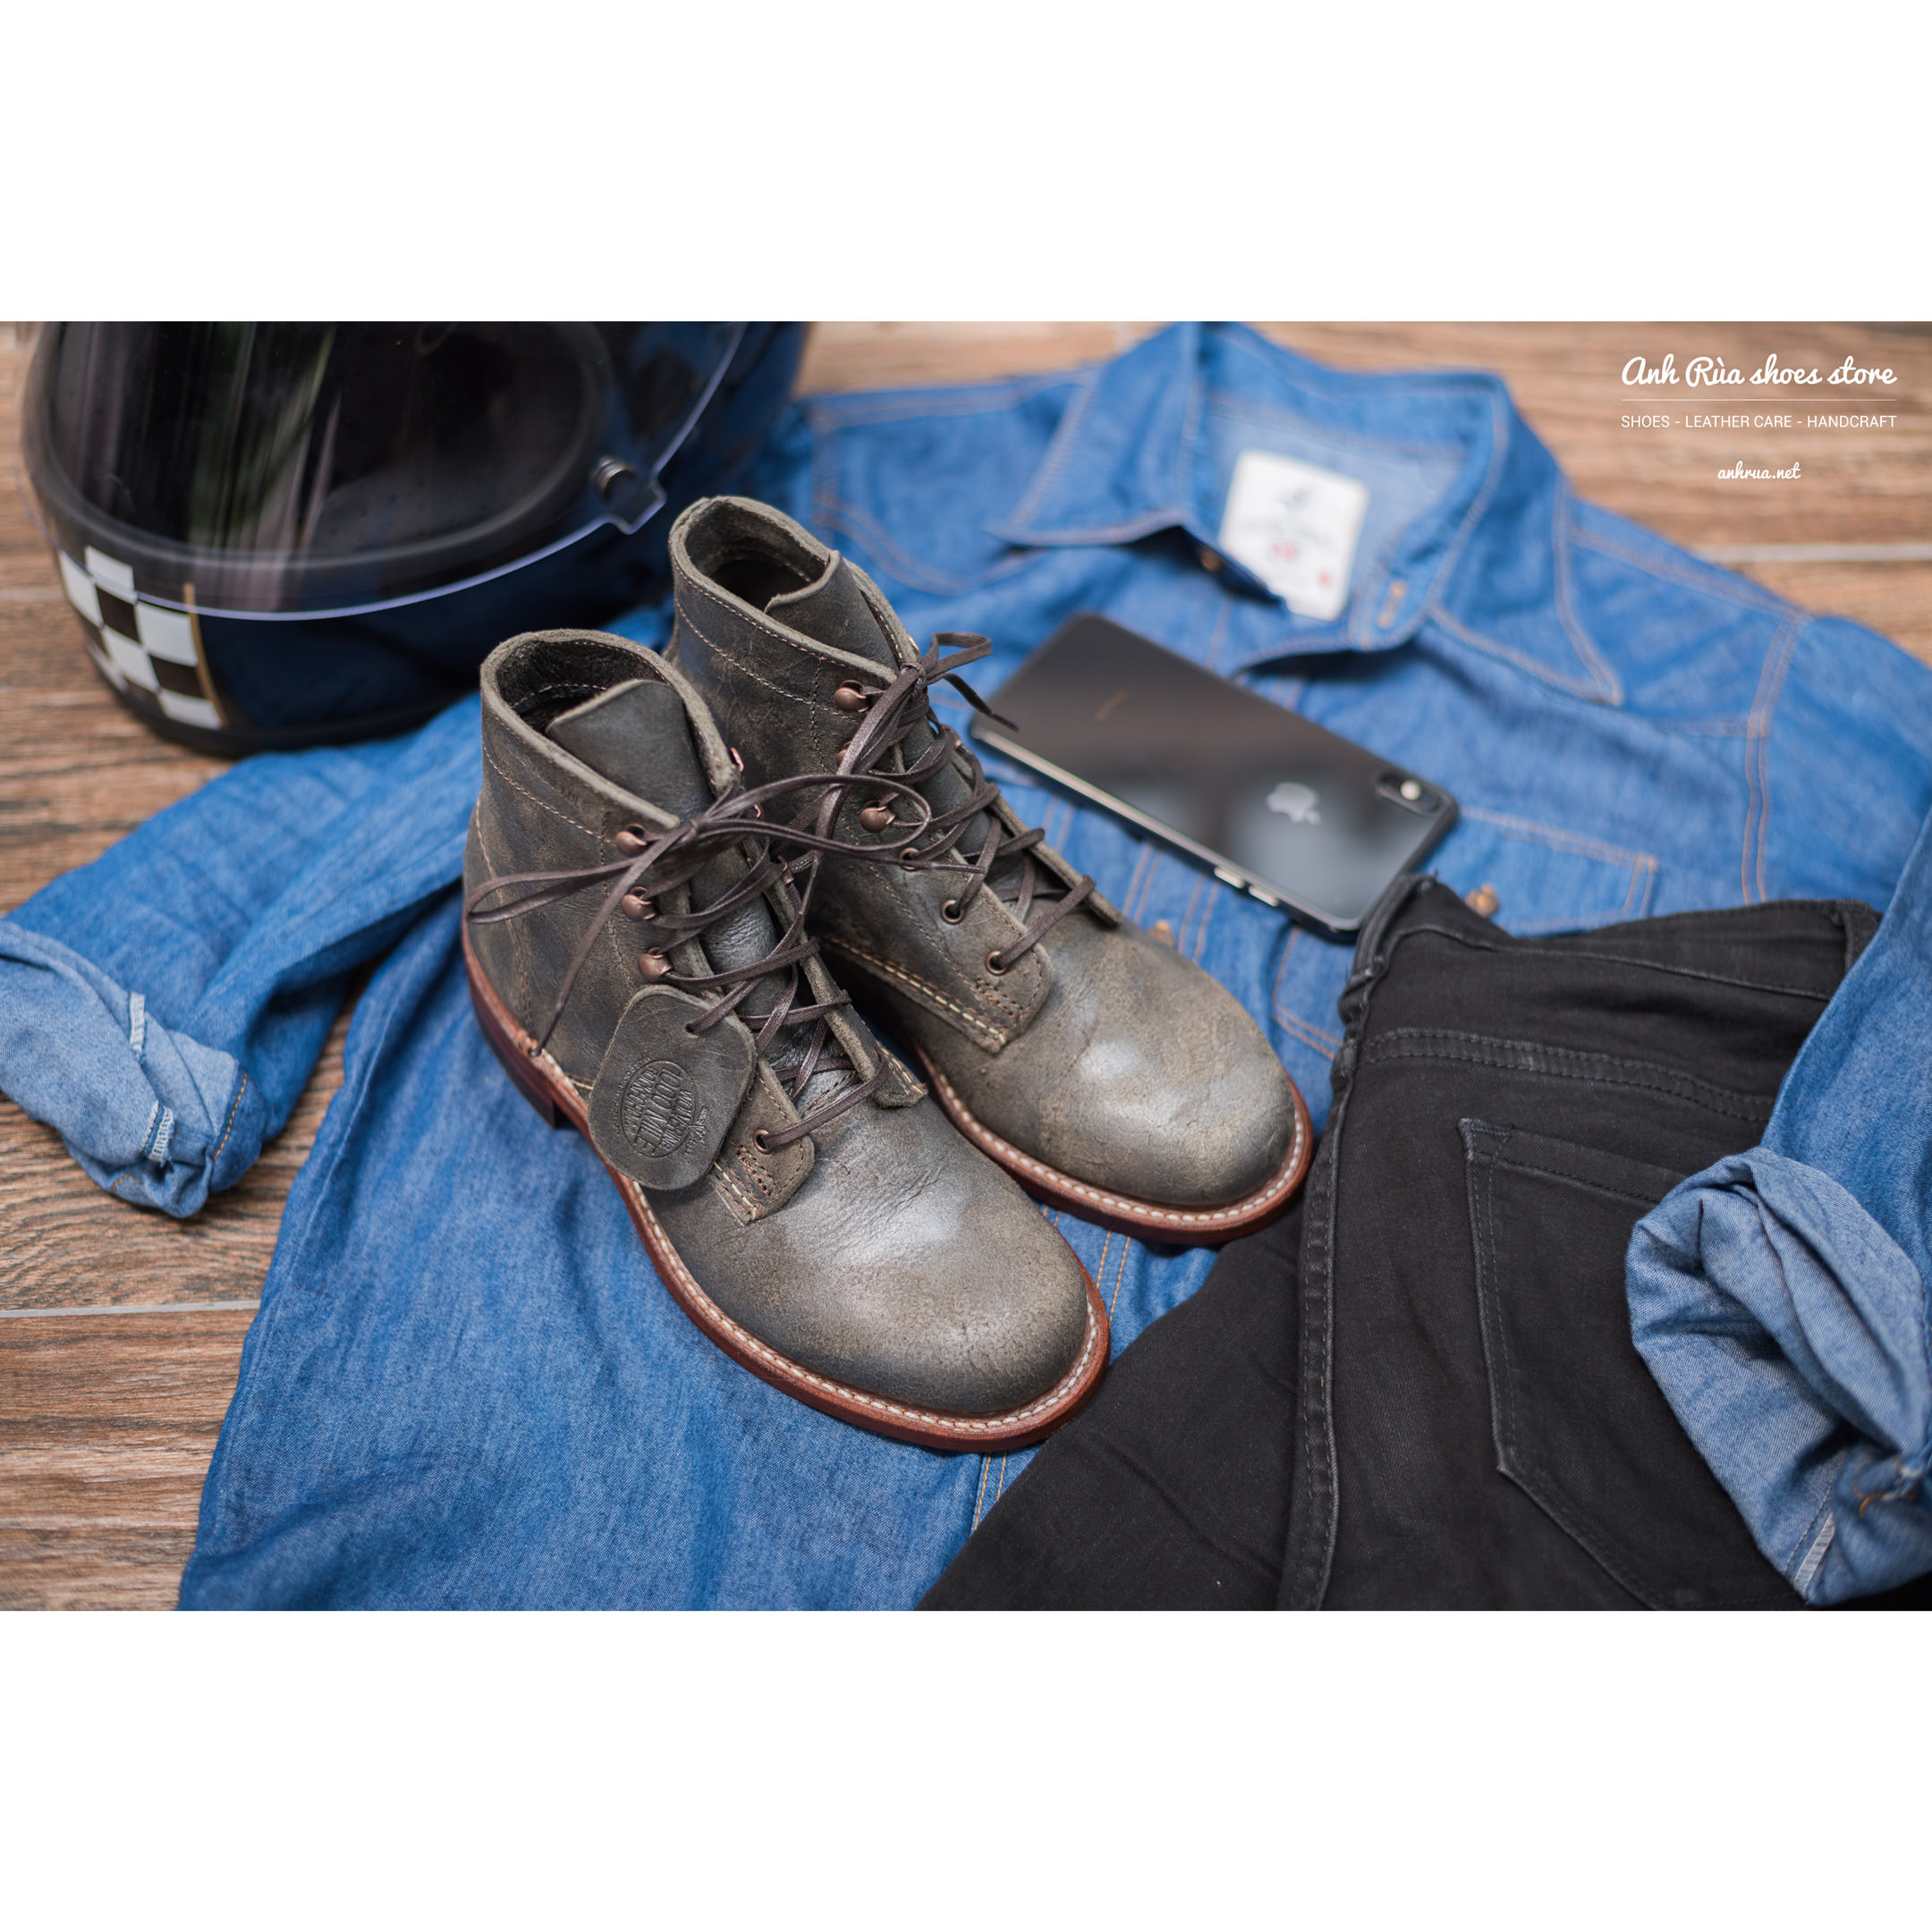 Giày Bốt Nữ Grey Stone 1000 Mile Boots Wolverine